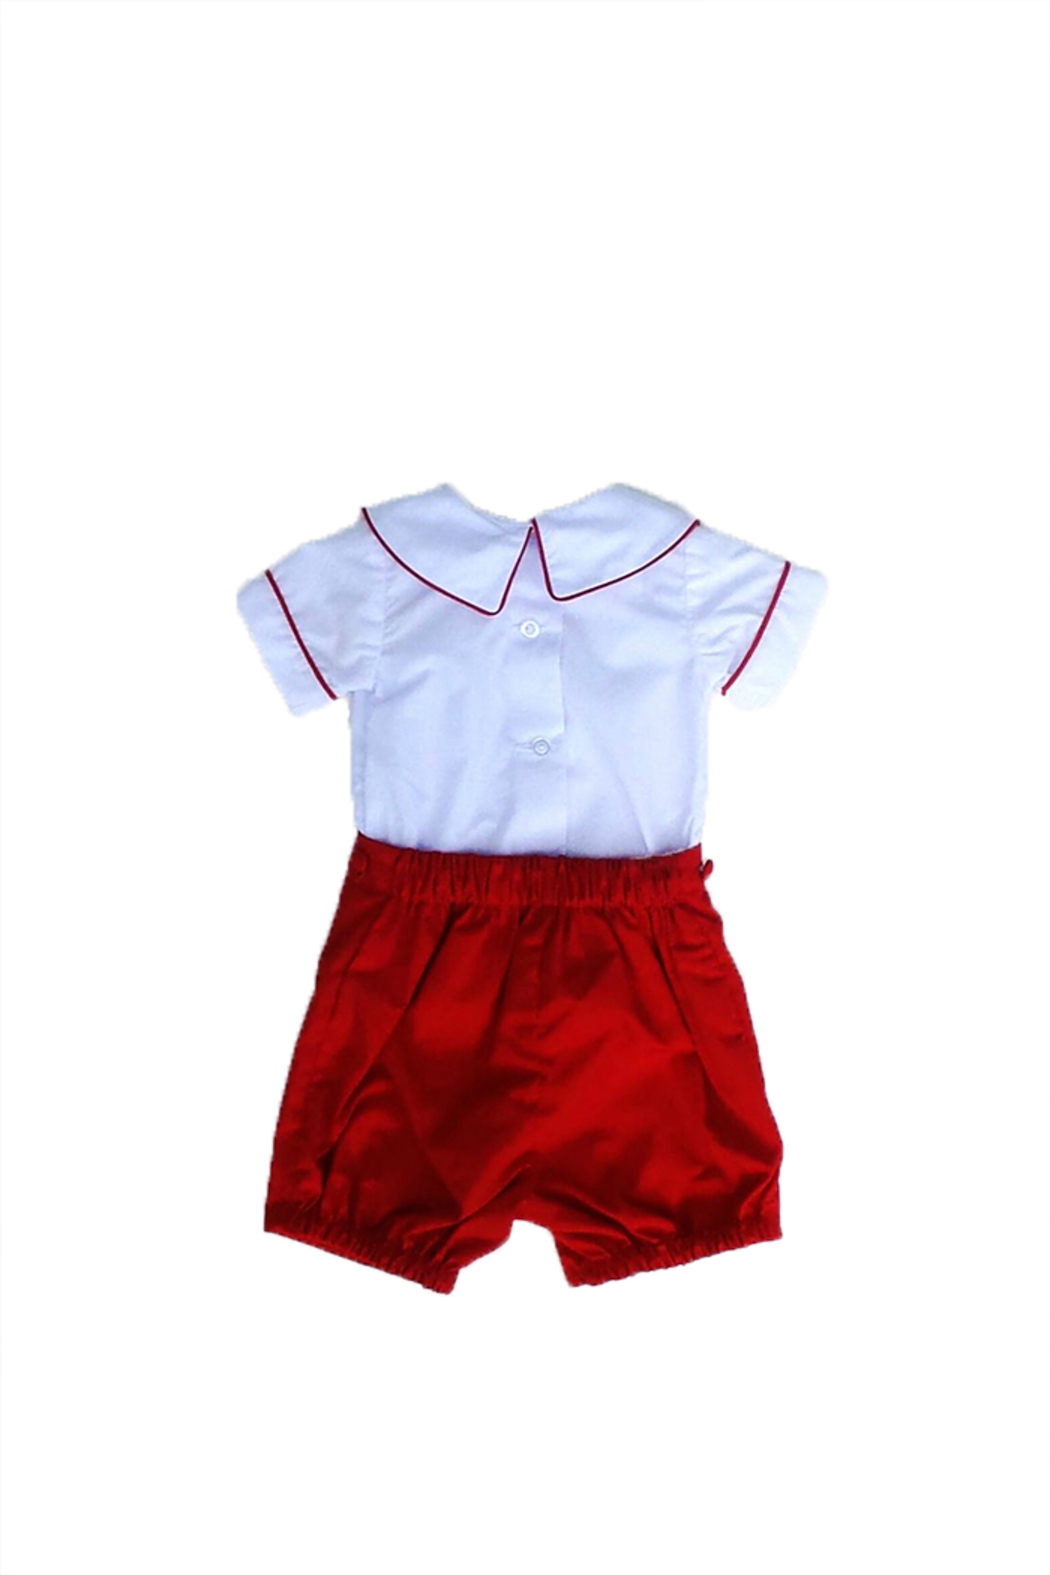 Marco&Lizzy Little Threads Red Boy Set - Front Full Image